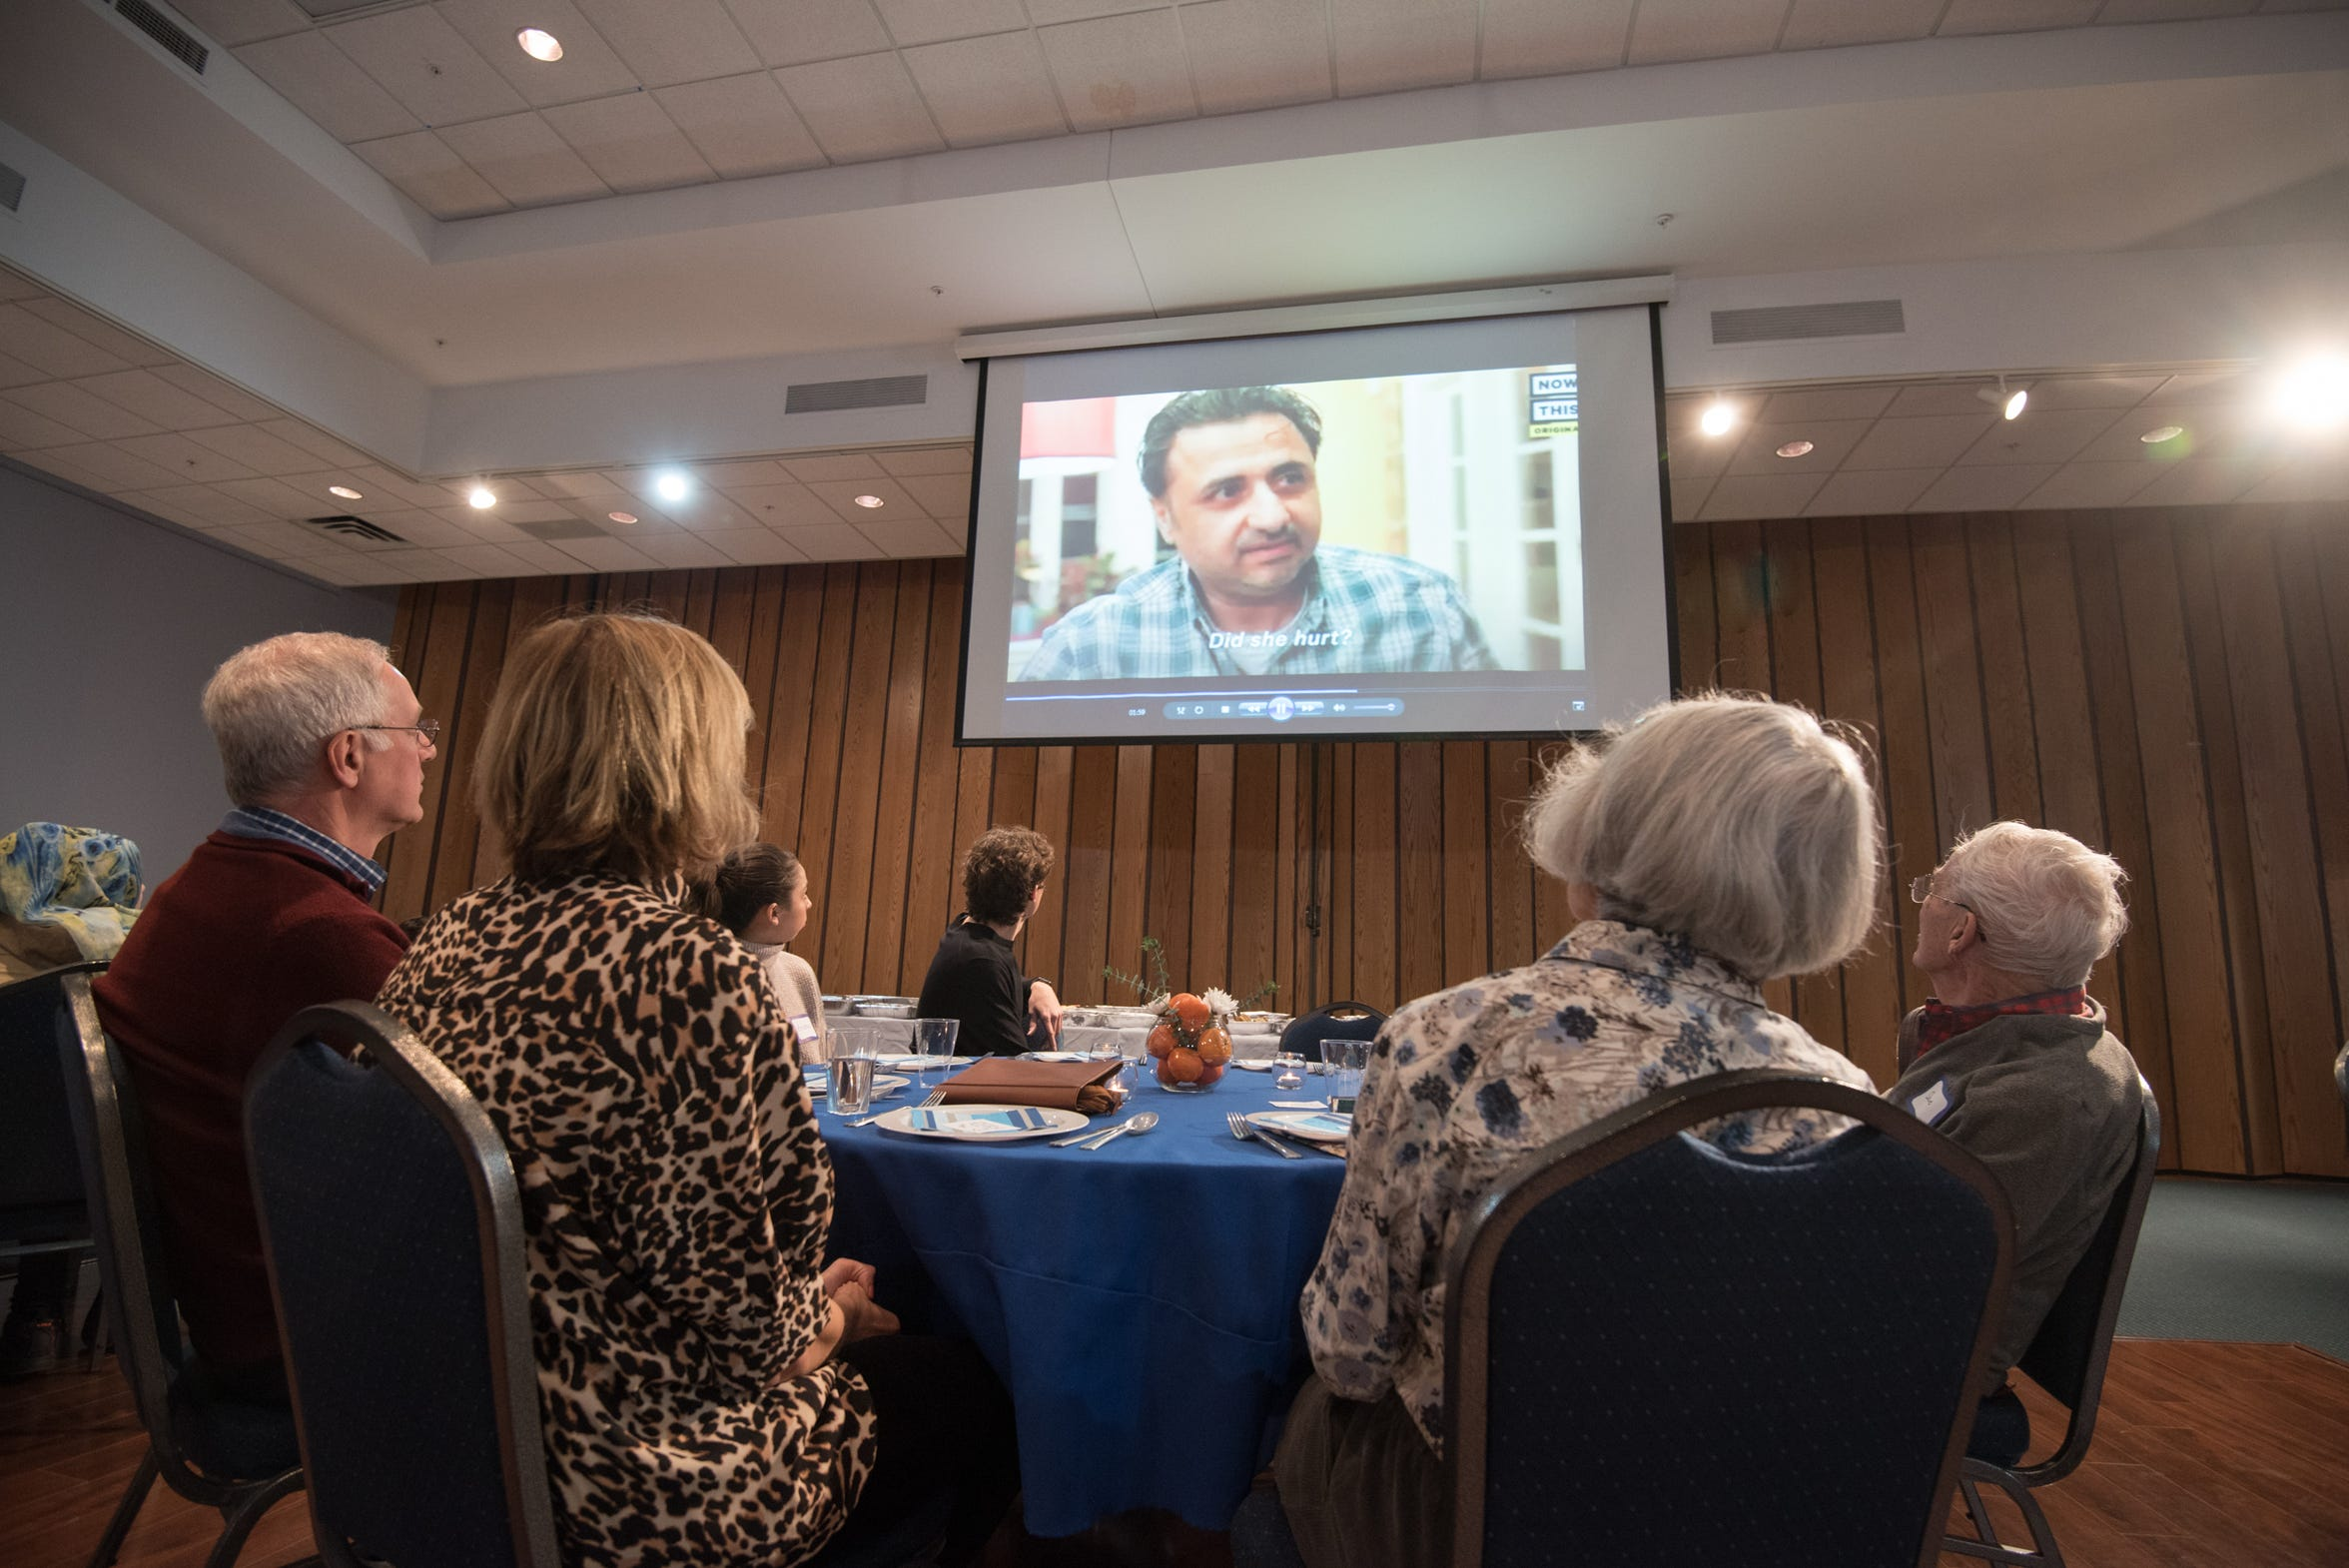 Guests watch a video about Syrian refugees. Members of the Syrian Supper club made dinner for atendees at the Monmouth Reformed Temple in Tinton Falls on Saturday, February 10, 2018. /Russ DeSantis for the Asbury Park Press